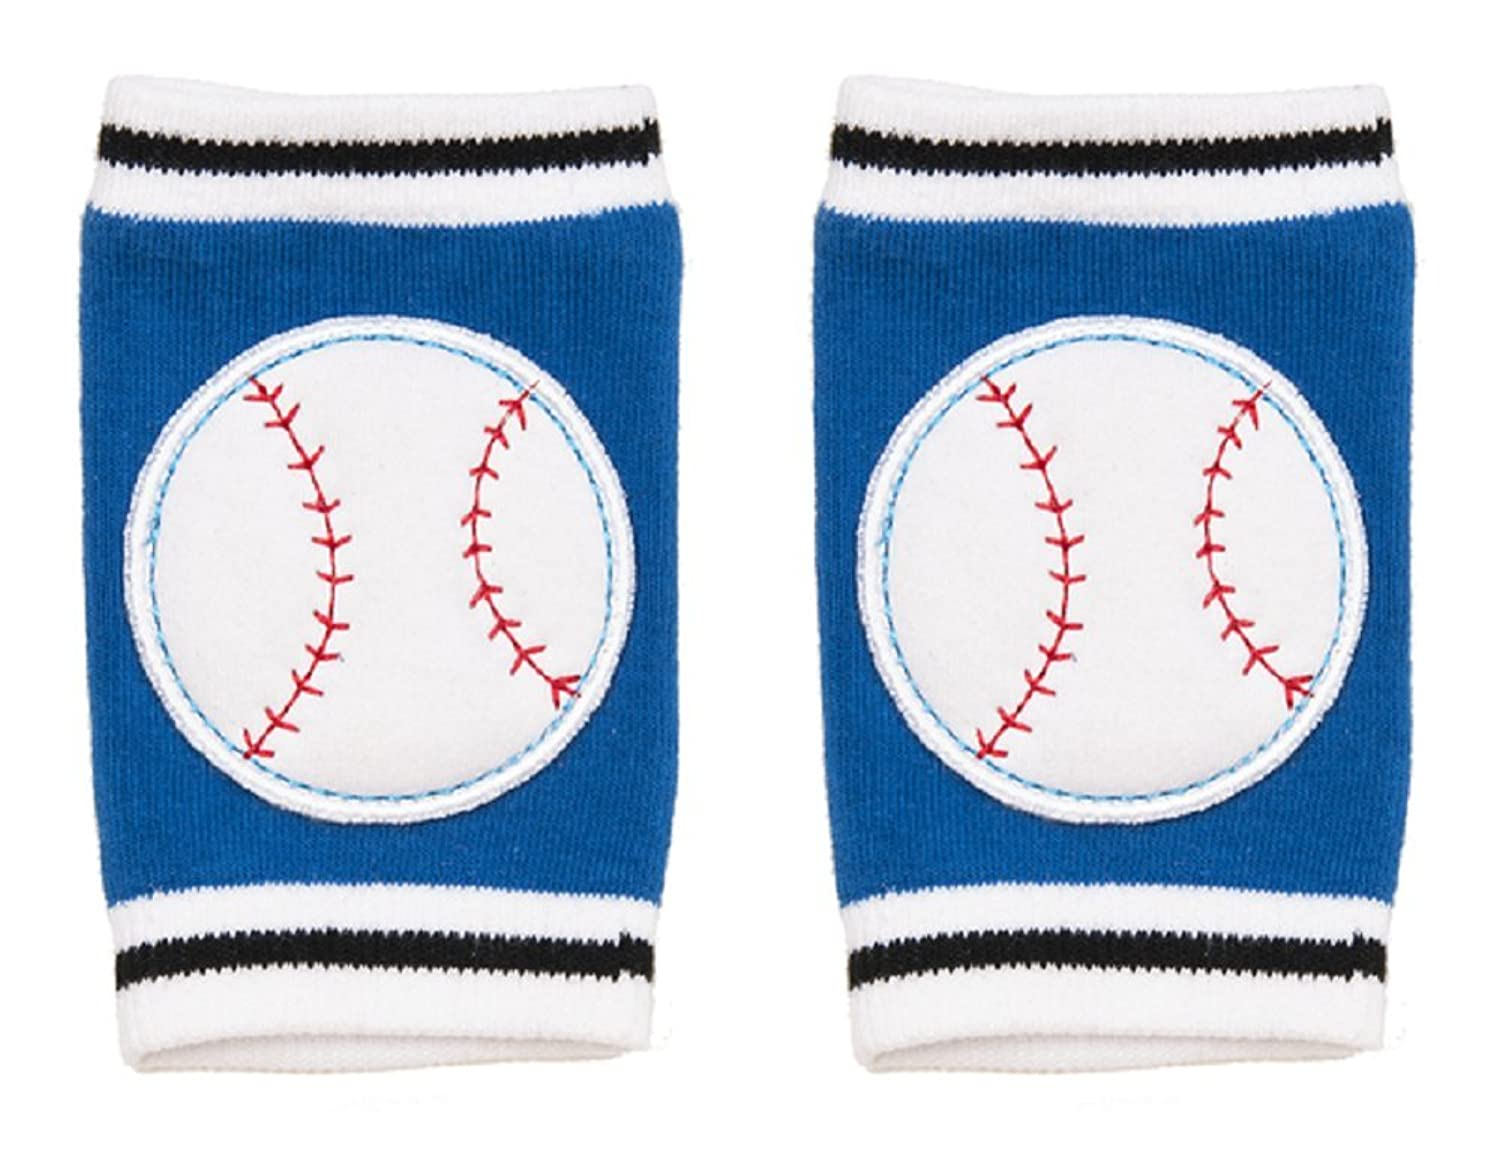 Ganz Baseball Baby Knee Pads save more